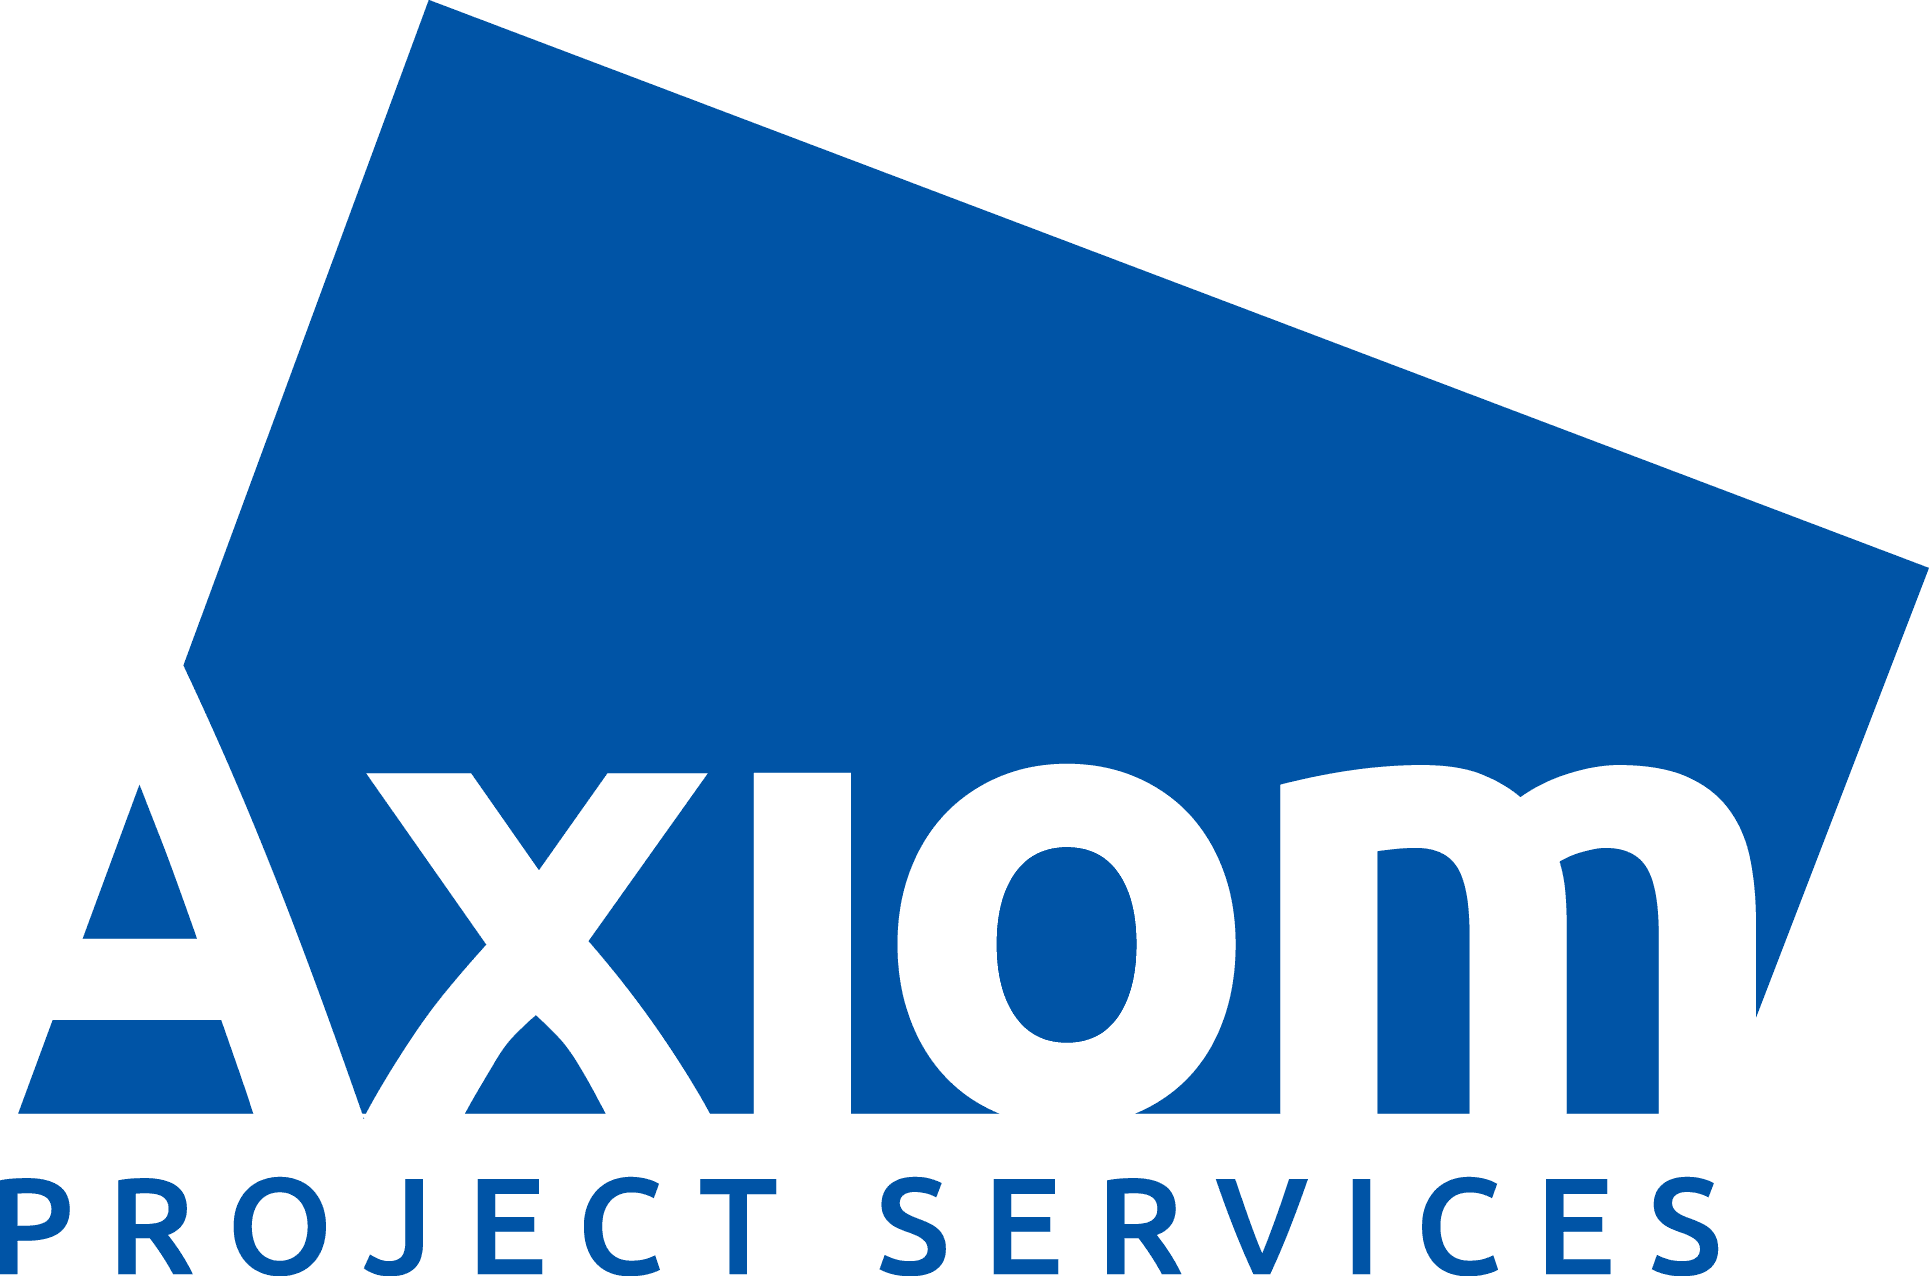 Axiom's new brand